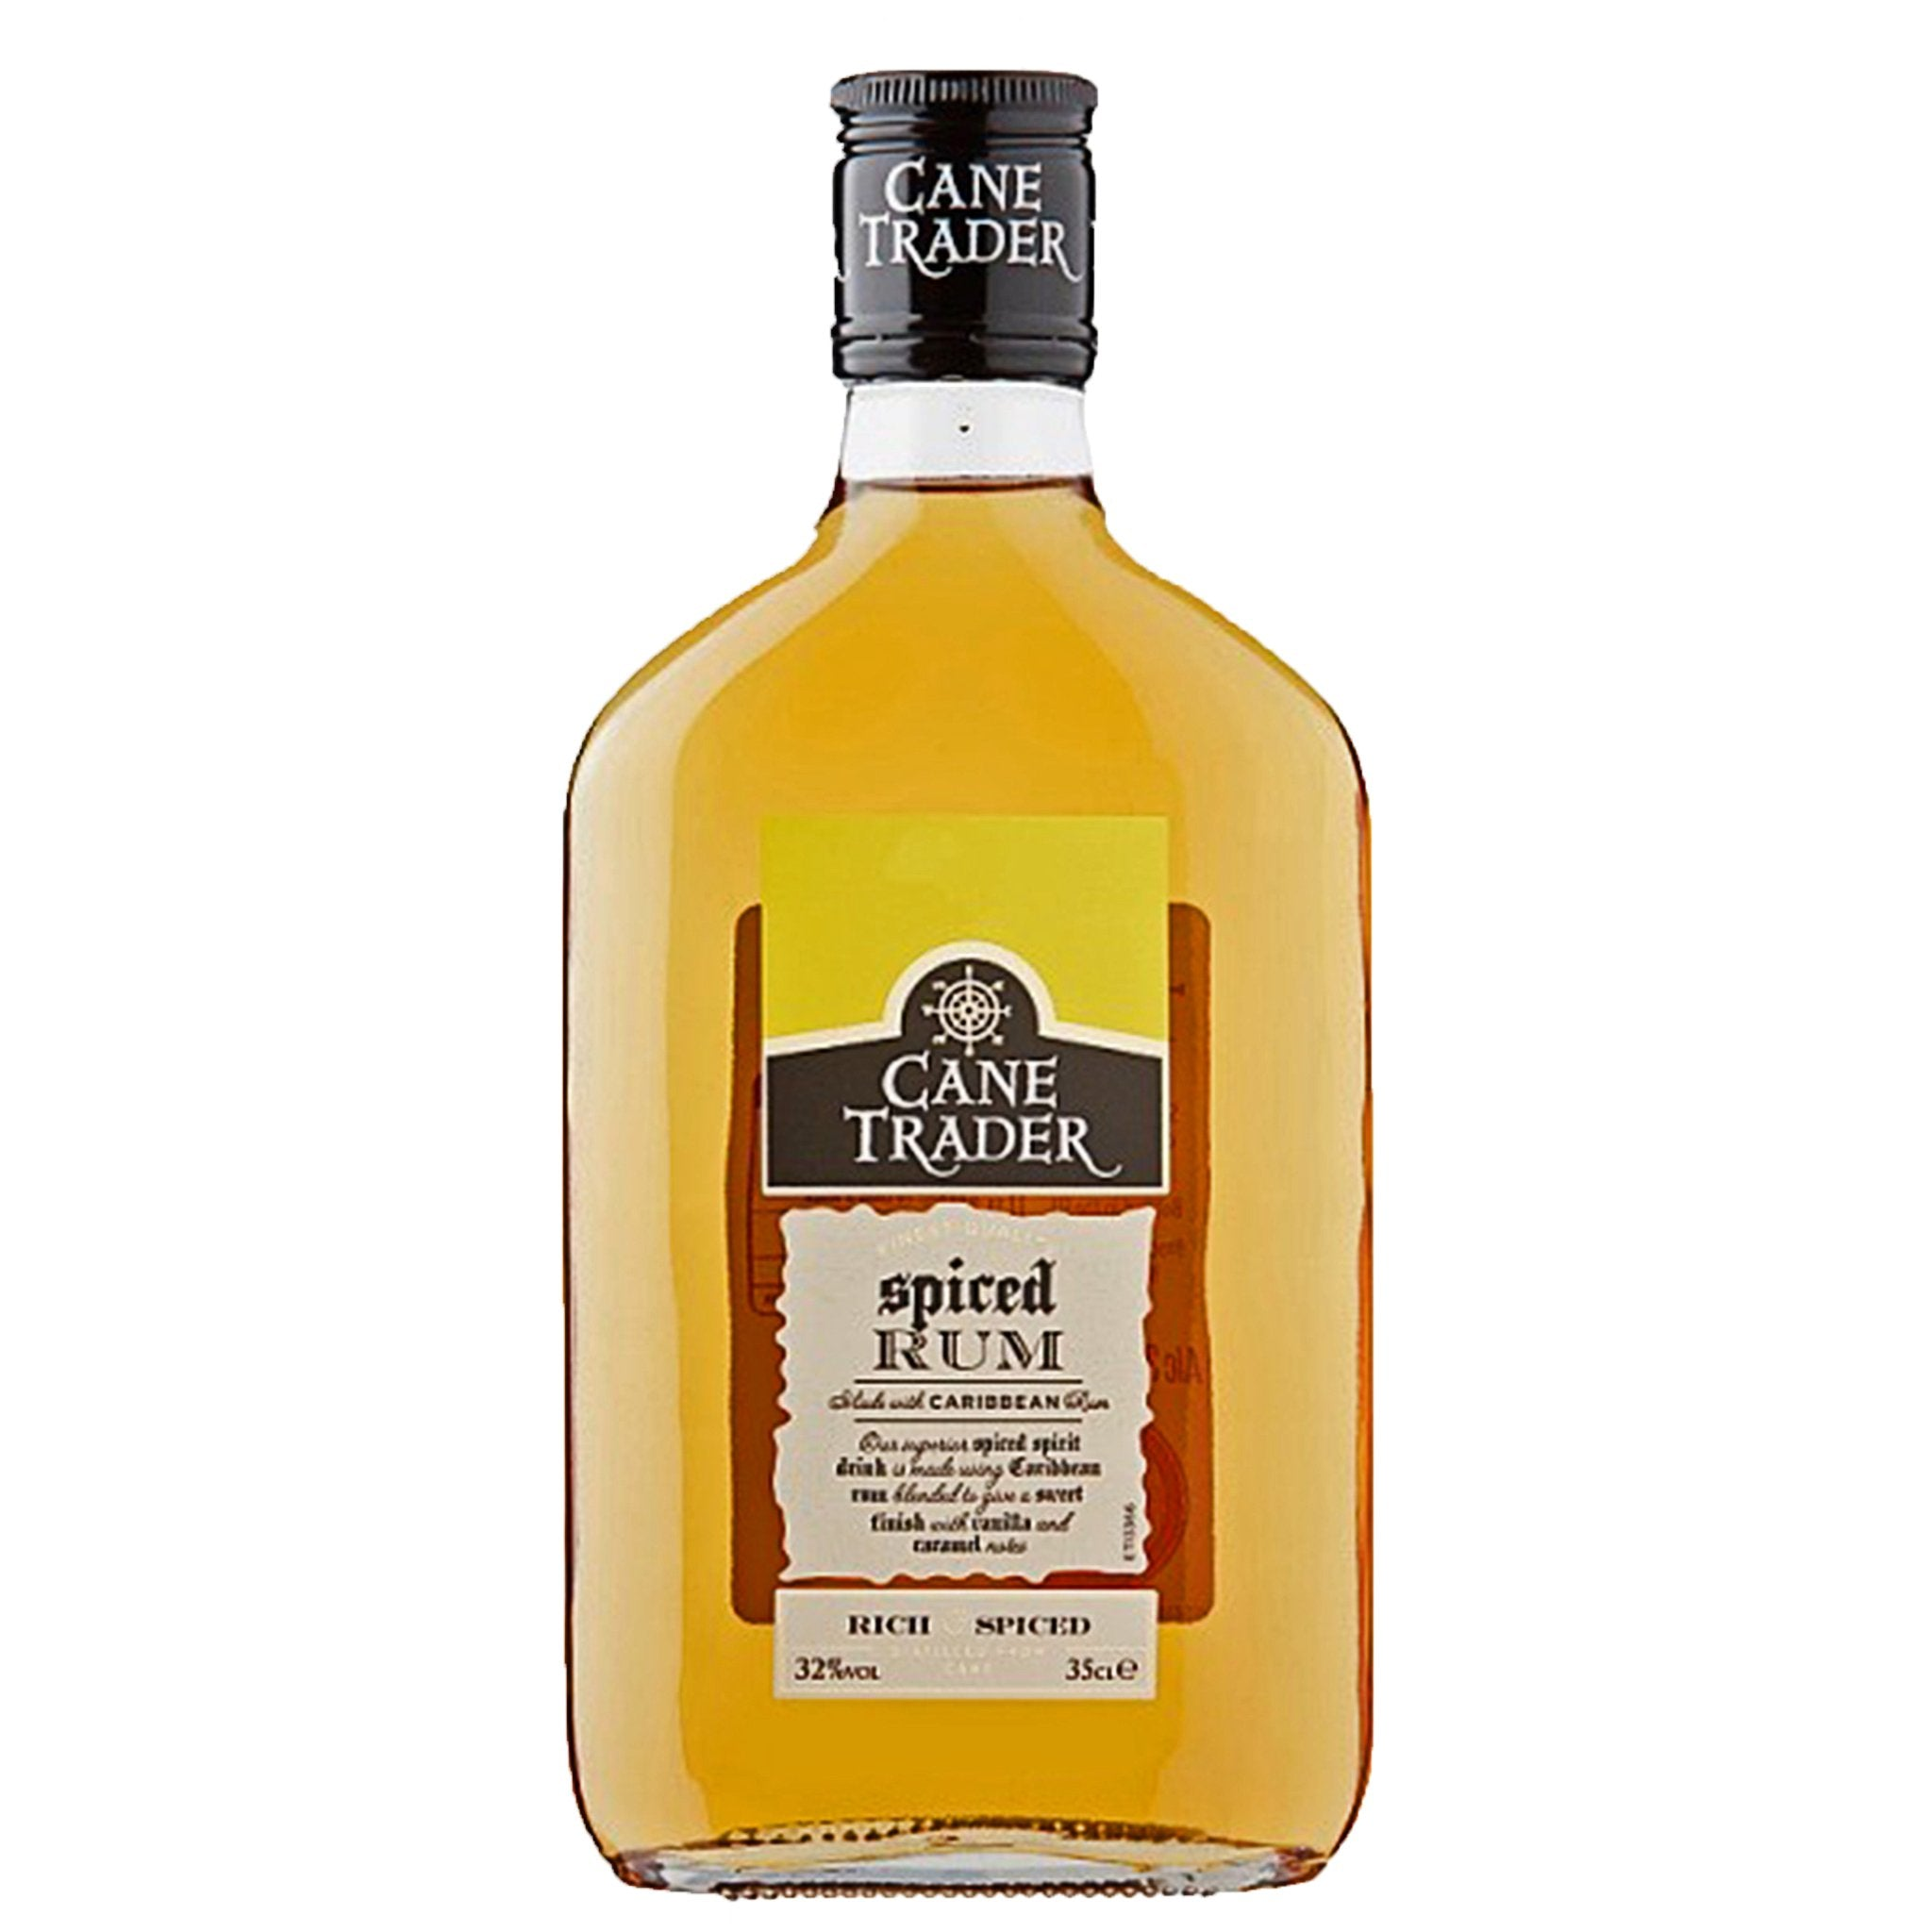 Cane Trader Spiced Rum 35cl, Rum by Drinks Shop